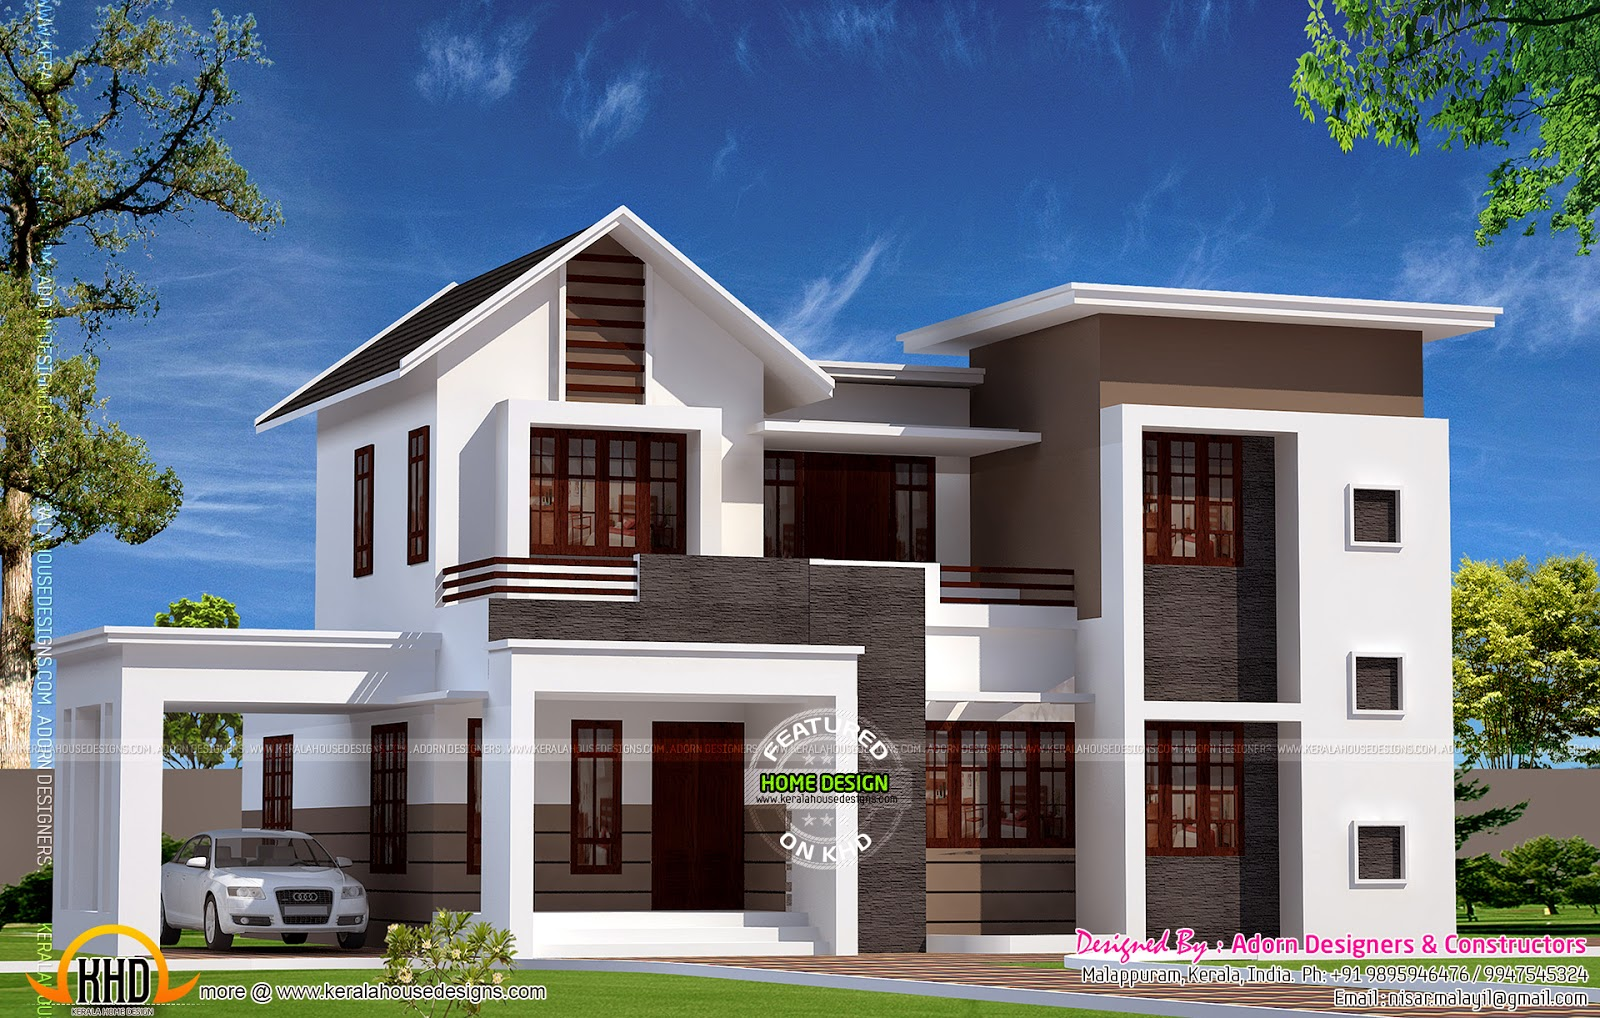 New house design in 1900 sq feet kerala home design and for Home design pictures